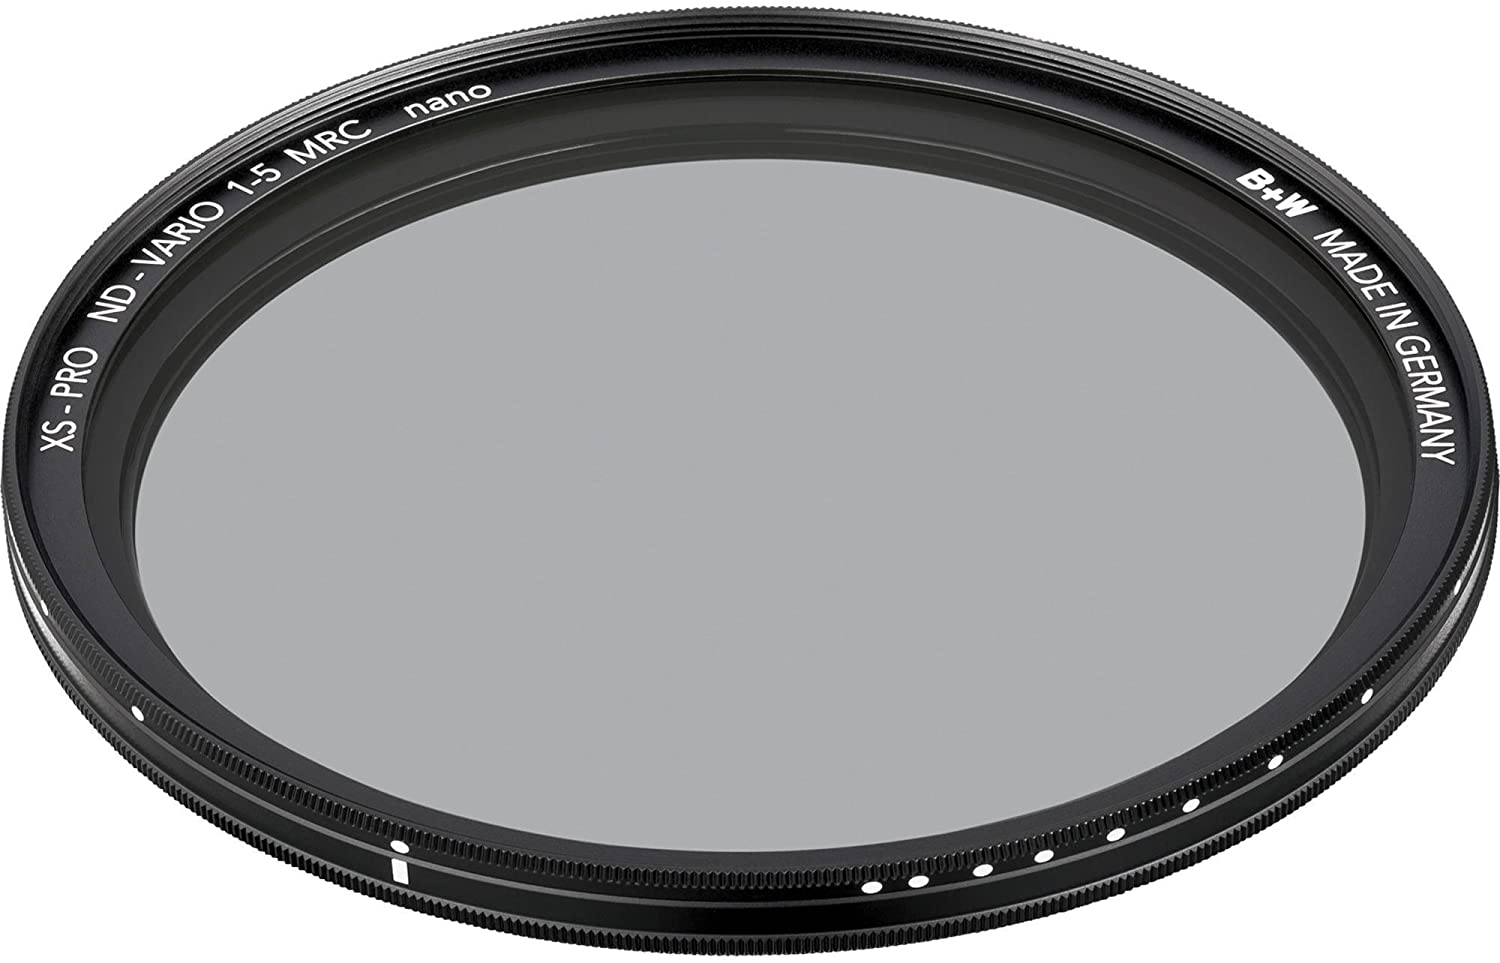 B+W 52mm XS-Pro Digital Vario Neutral Density ND Filter with Multi-Resistant Nano Coating for Camera Lens